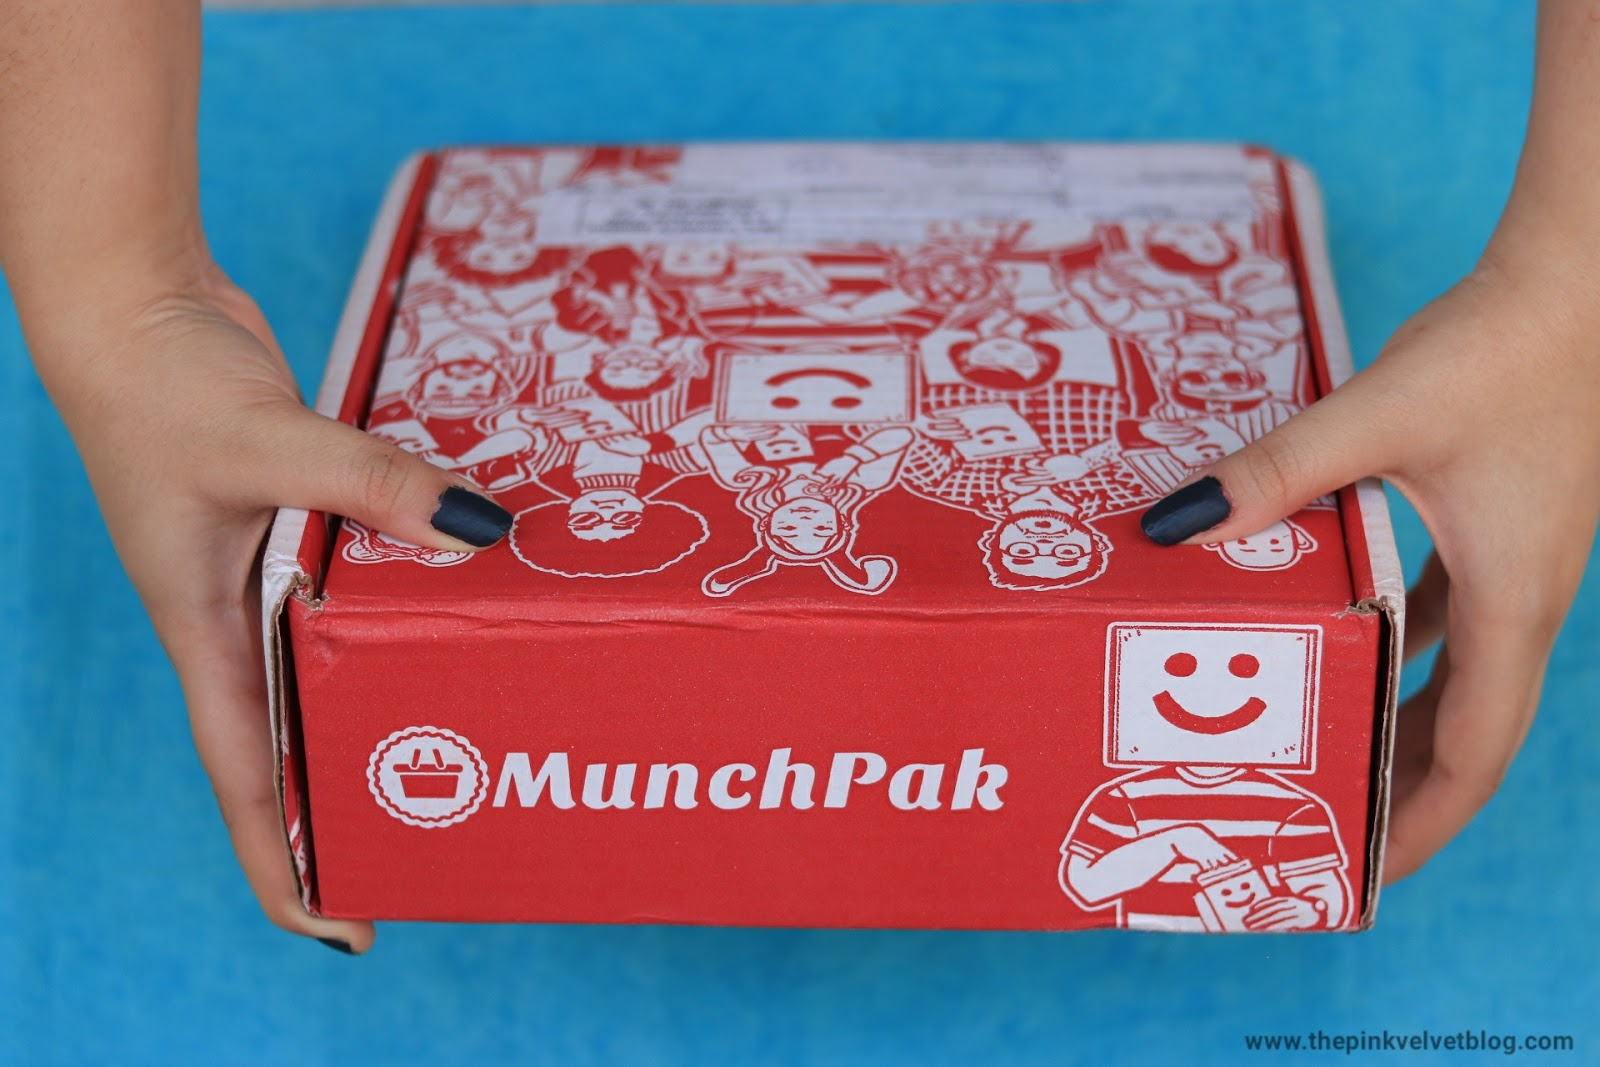 MunchPak - Snack Subscription Box